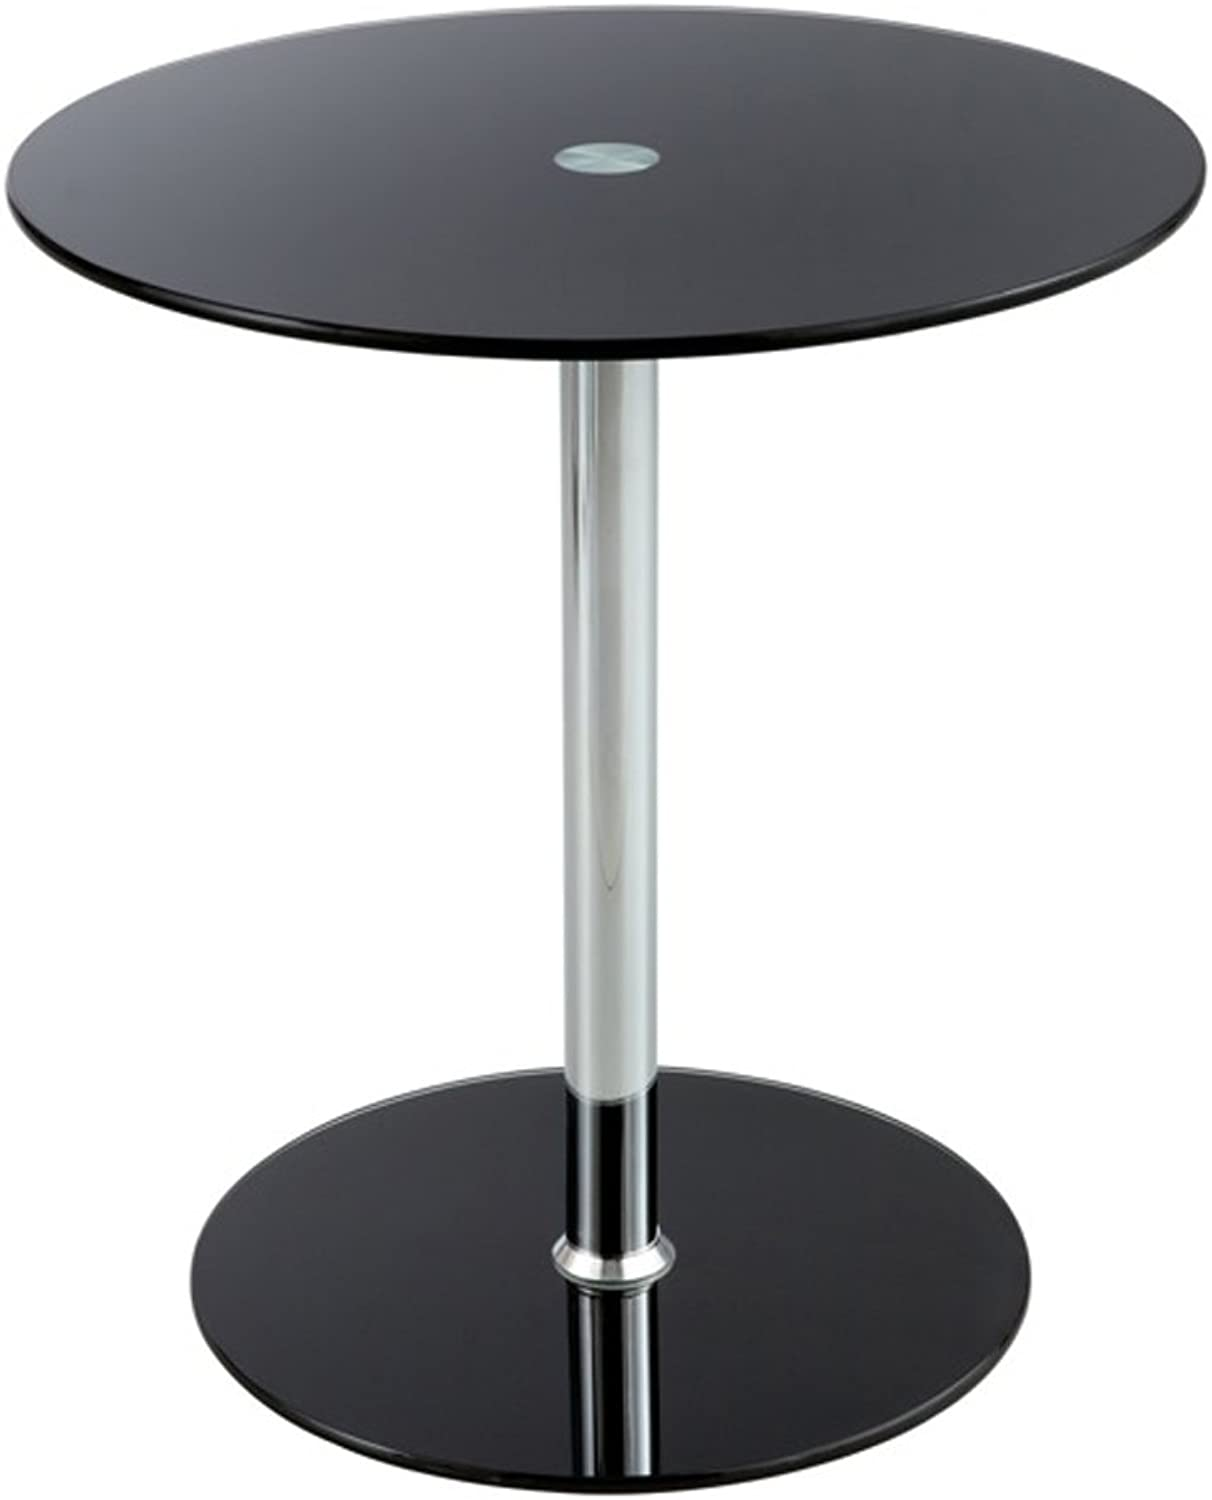 Safco Home Office Decorative Glass Accent End Table Black